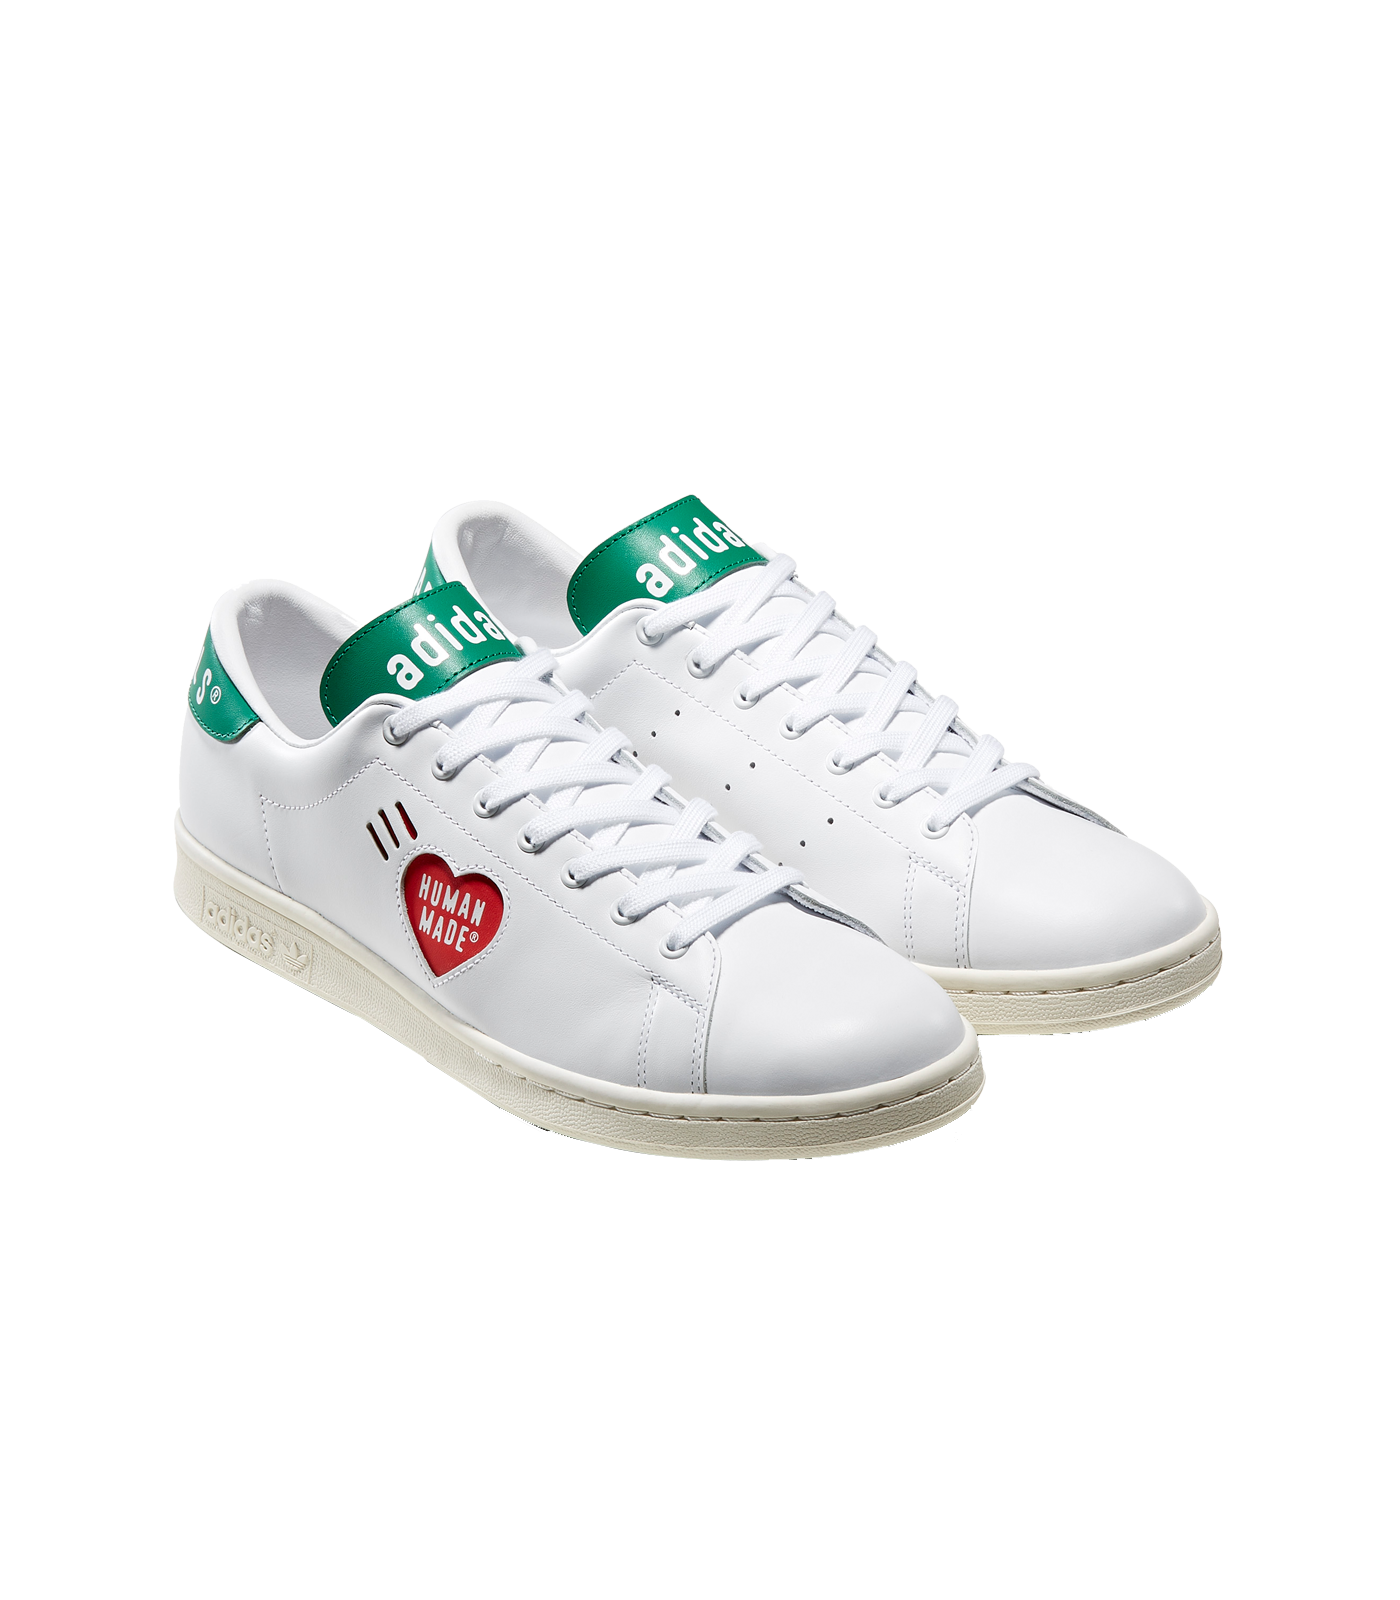 HUMAN MADE STAN SMITH - GREEN/WHITE